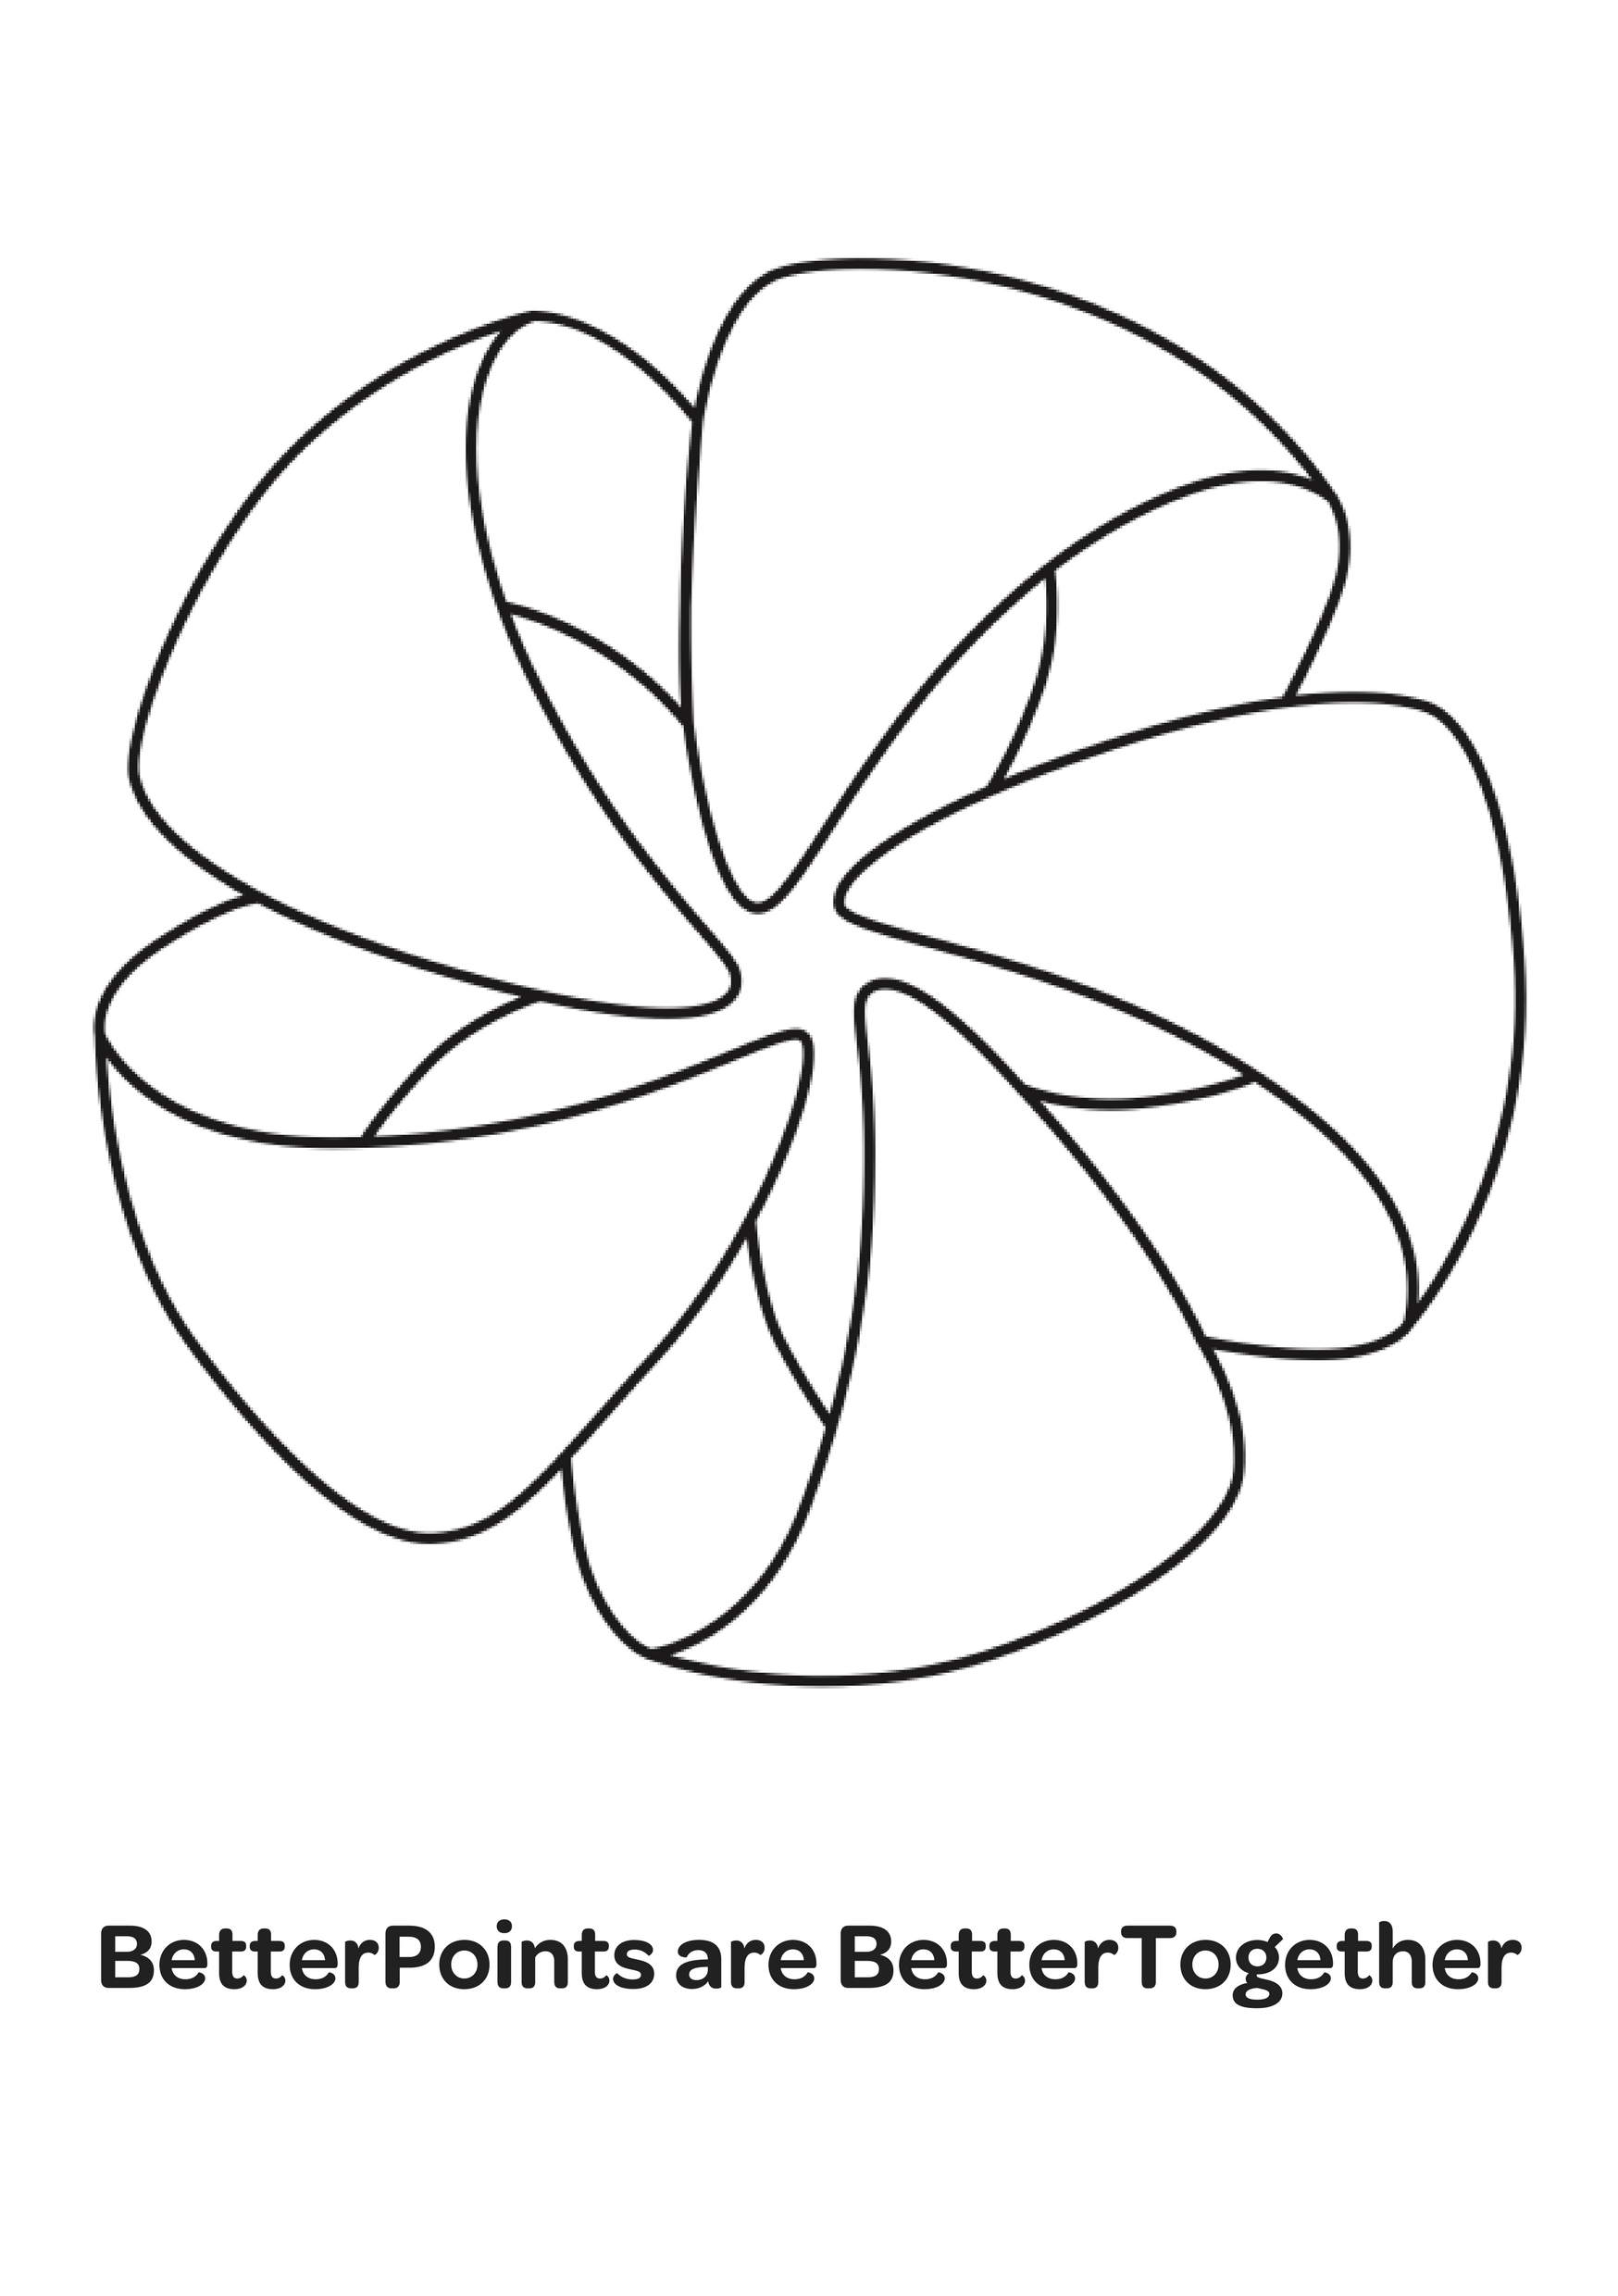 betterpoints colouring wheel